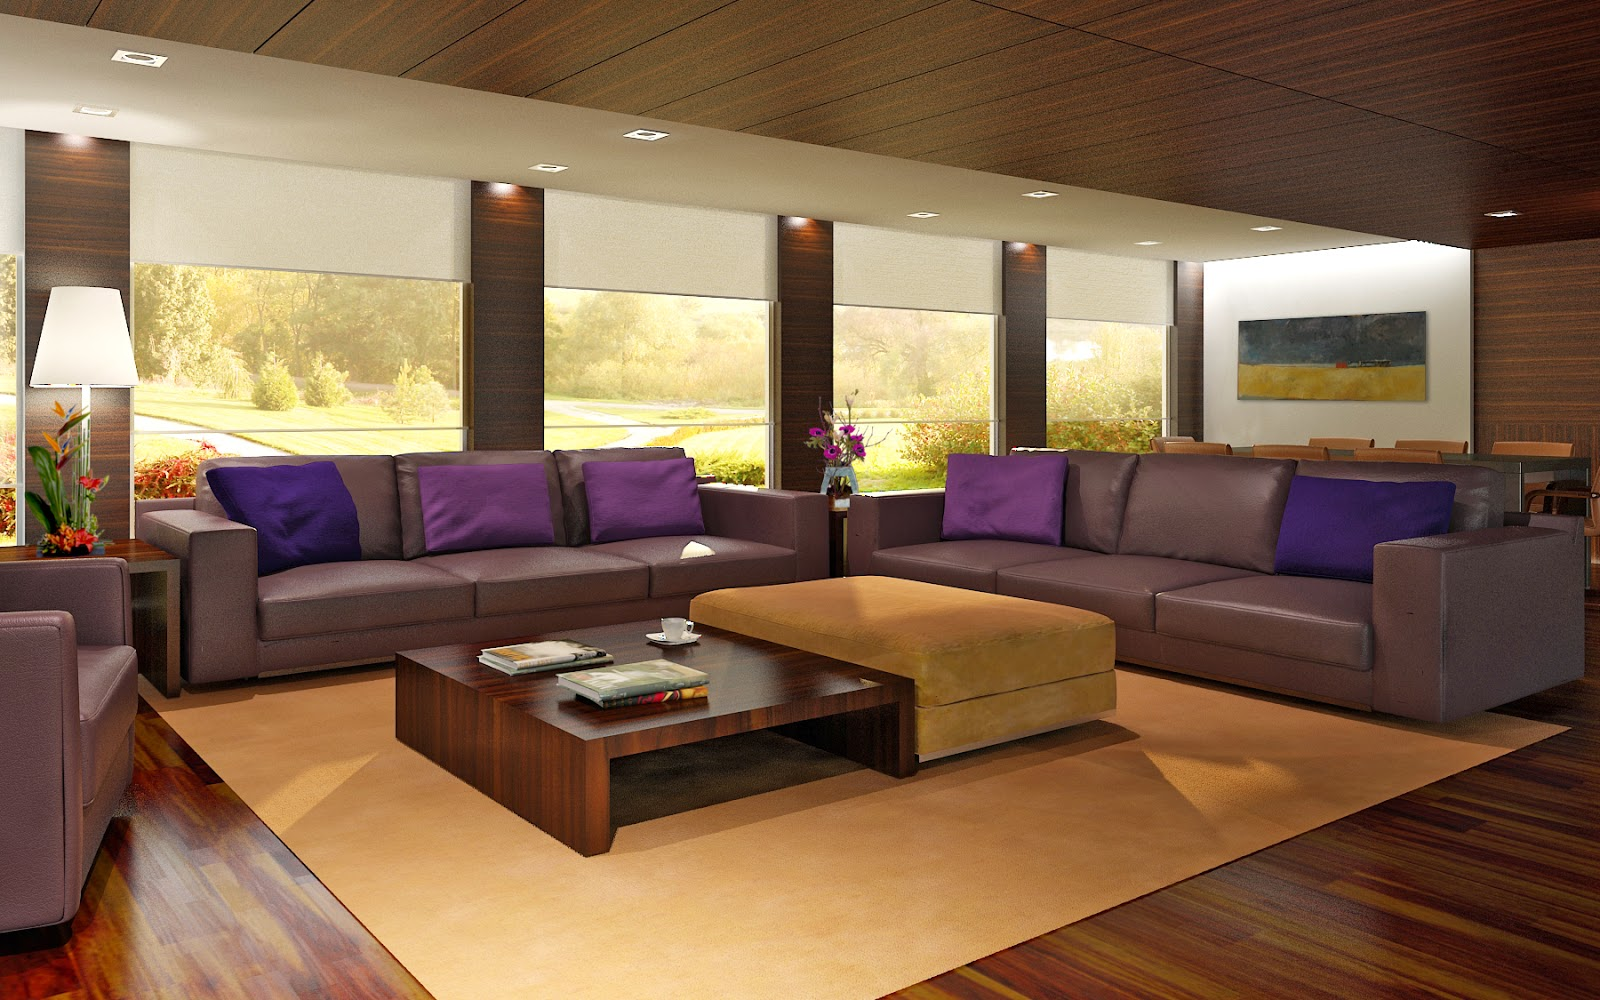 Purple Living Room Furniture Chair Designs For Living Room In Nigeria House Decor